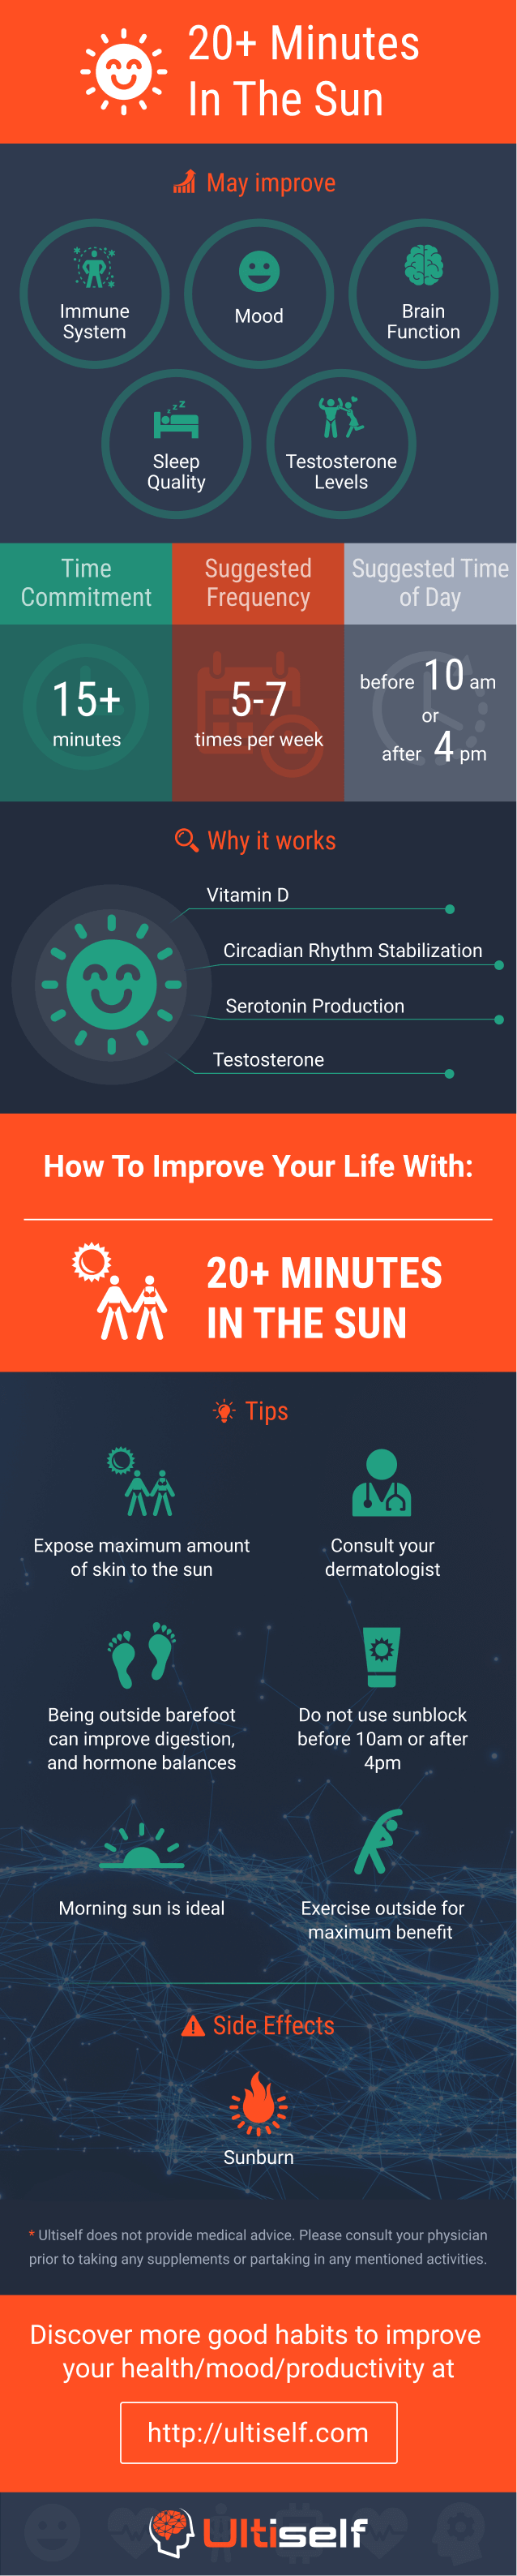 20+ minutes in the sun infographic